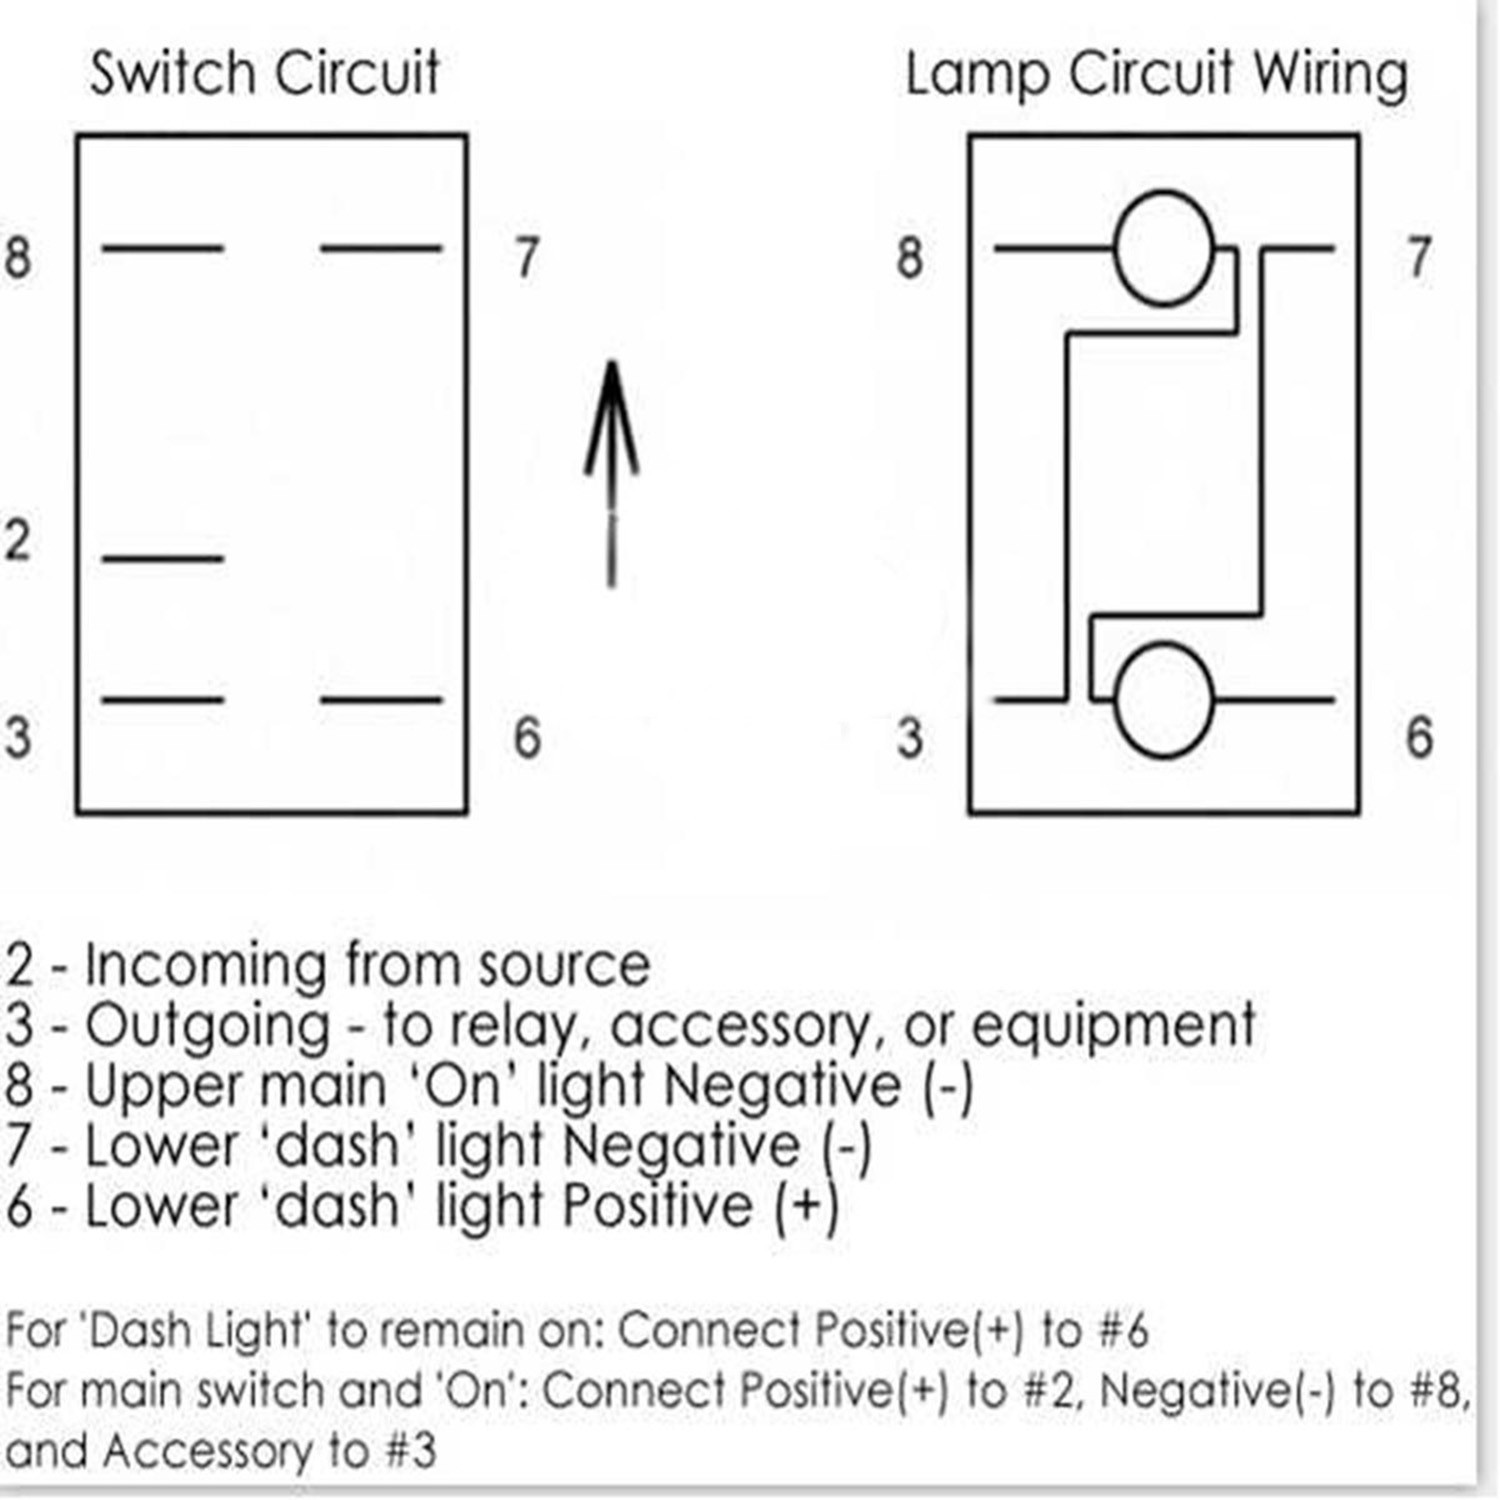 Power Window Switch Diagram 5 Pin Power Window Switch Wiring Diagram Best  Simple Of Power Window